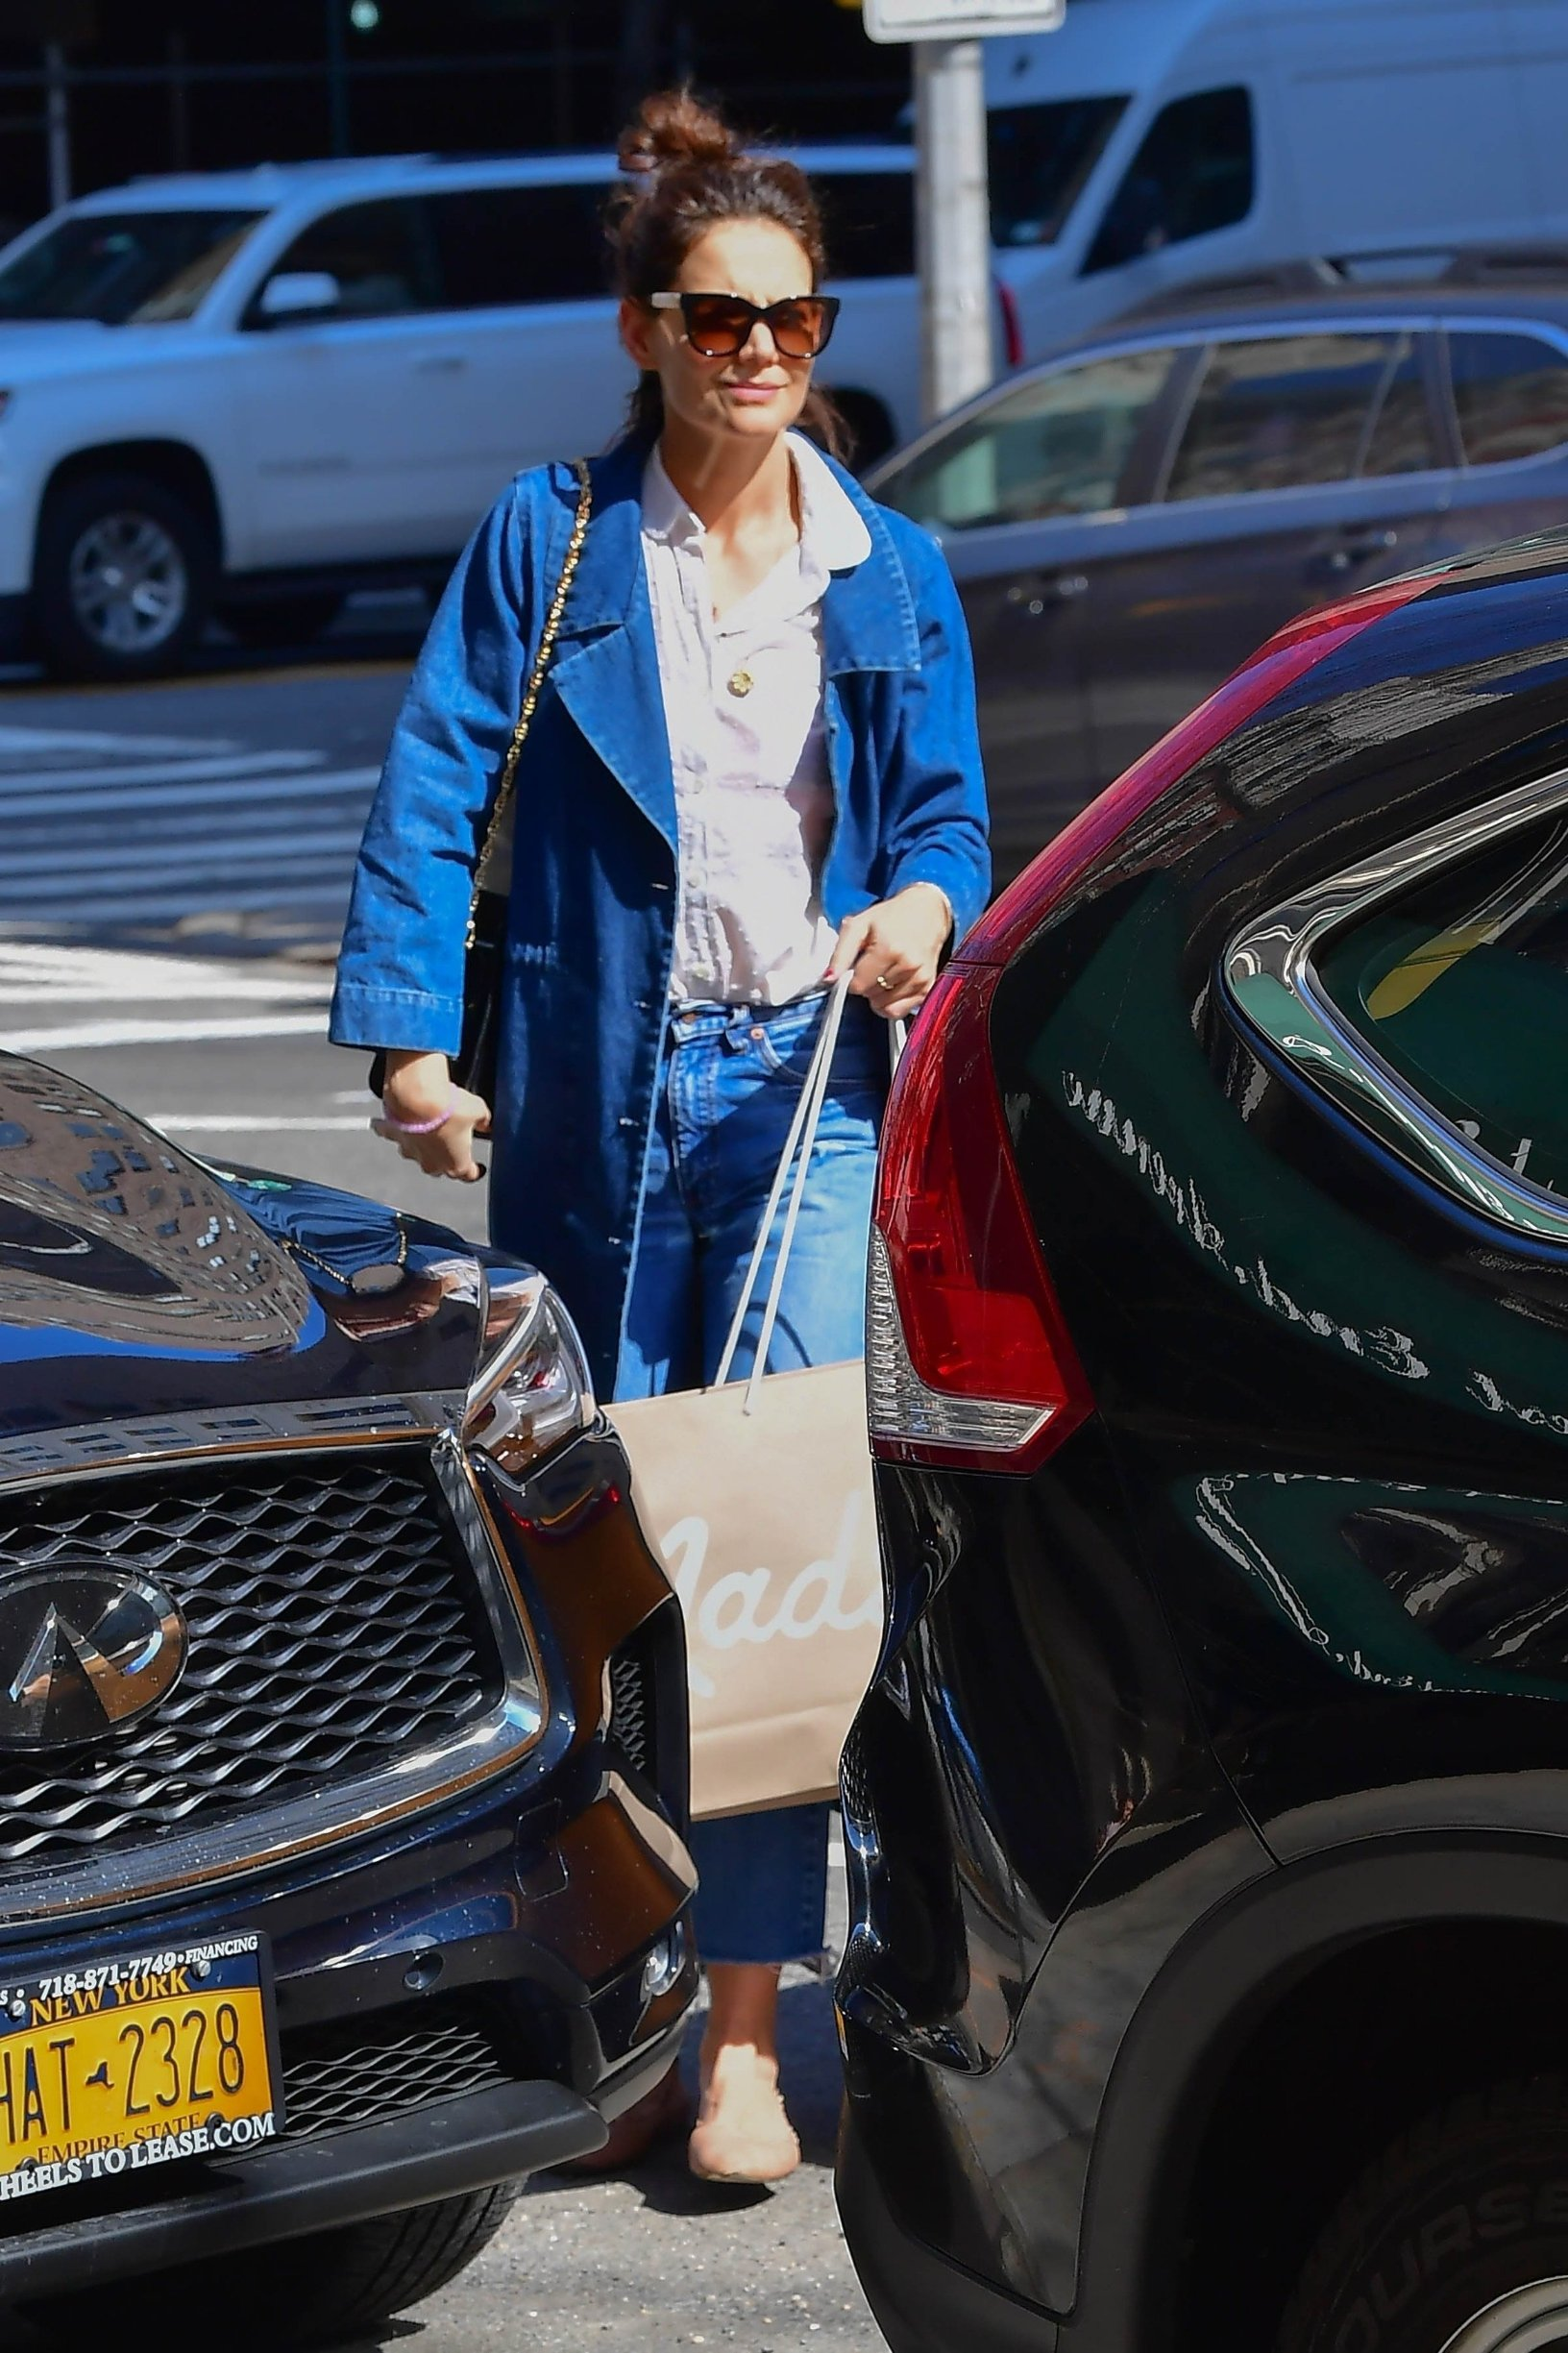 ** RIGHTS: WORLDWIDE EXCEPT IN FRANCE, GERMANY, POLAND ** New York, NY  - Actress Katie Holmes feeling blue wearing shades of blue with her ensemble today as she endulges into some retail therapy at Madewell.  With rumors swirling that she and Jamie Foxx have split, perhaps Katie was looking to cheer herself up with a shopping spree.  Pictured: Katie Holmes  BACKGRID USA 14 MARCH 2019, Image: 419475732, License: Rights-managed, Restrictions: , Model Release: no, Credit line: Profimedia, Backgrid USA